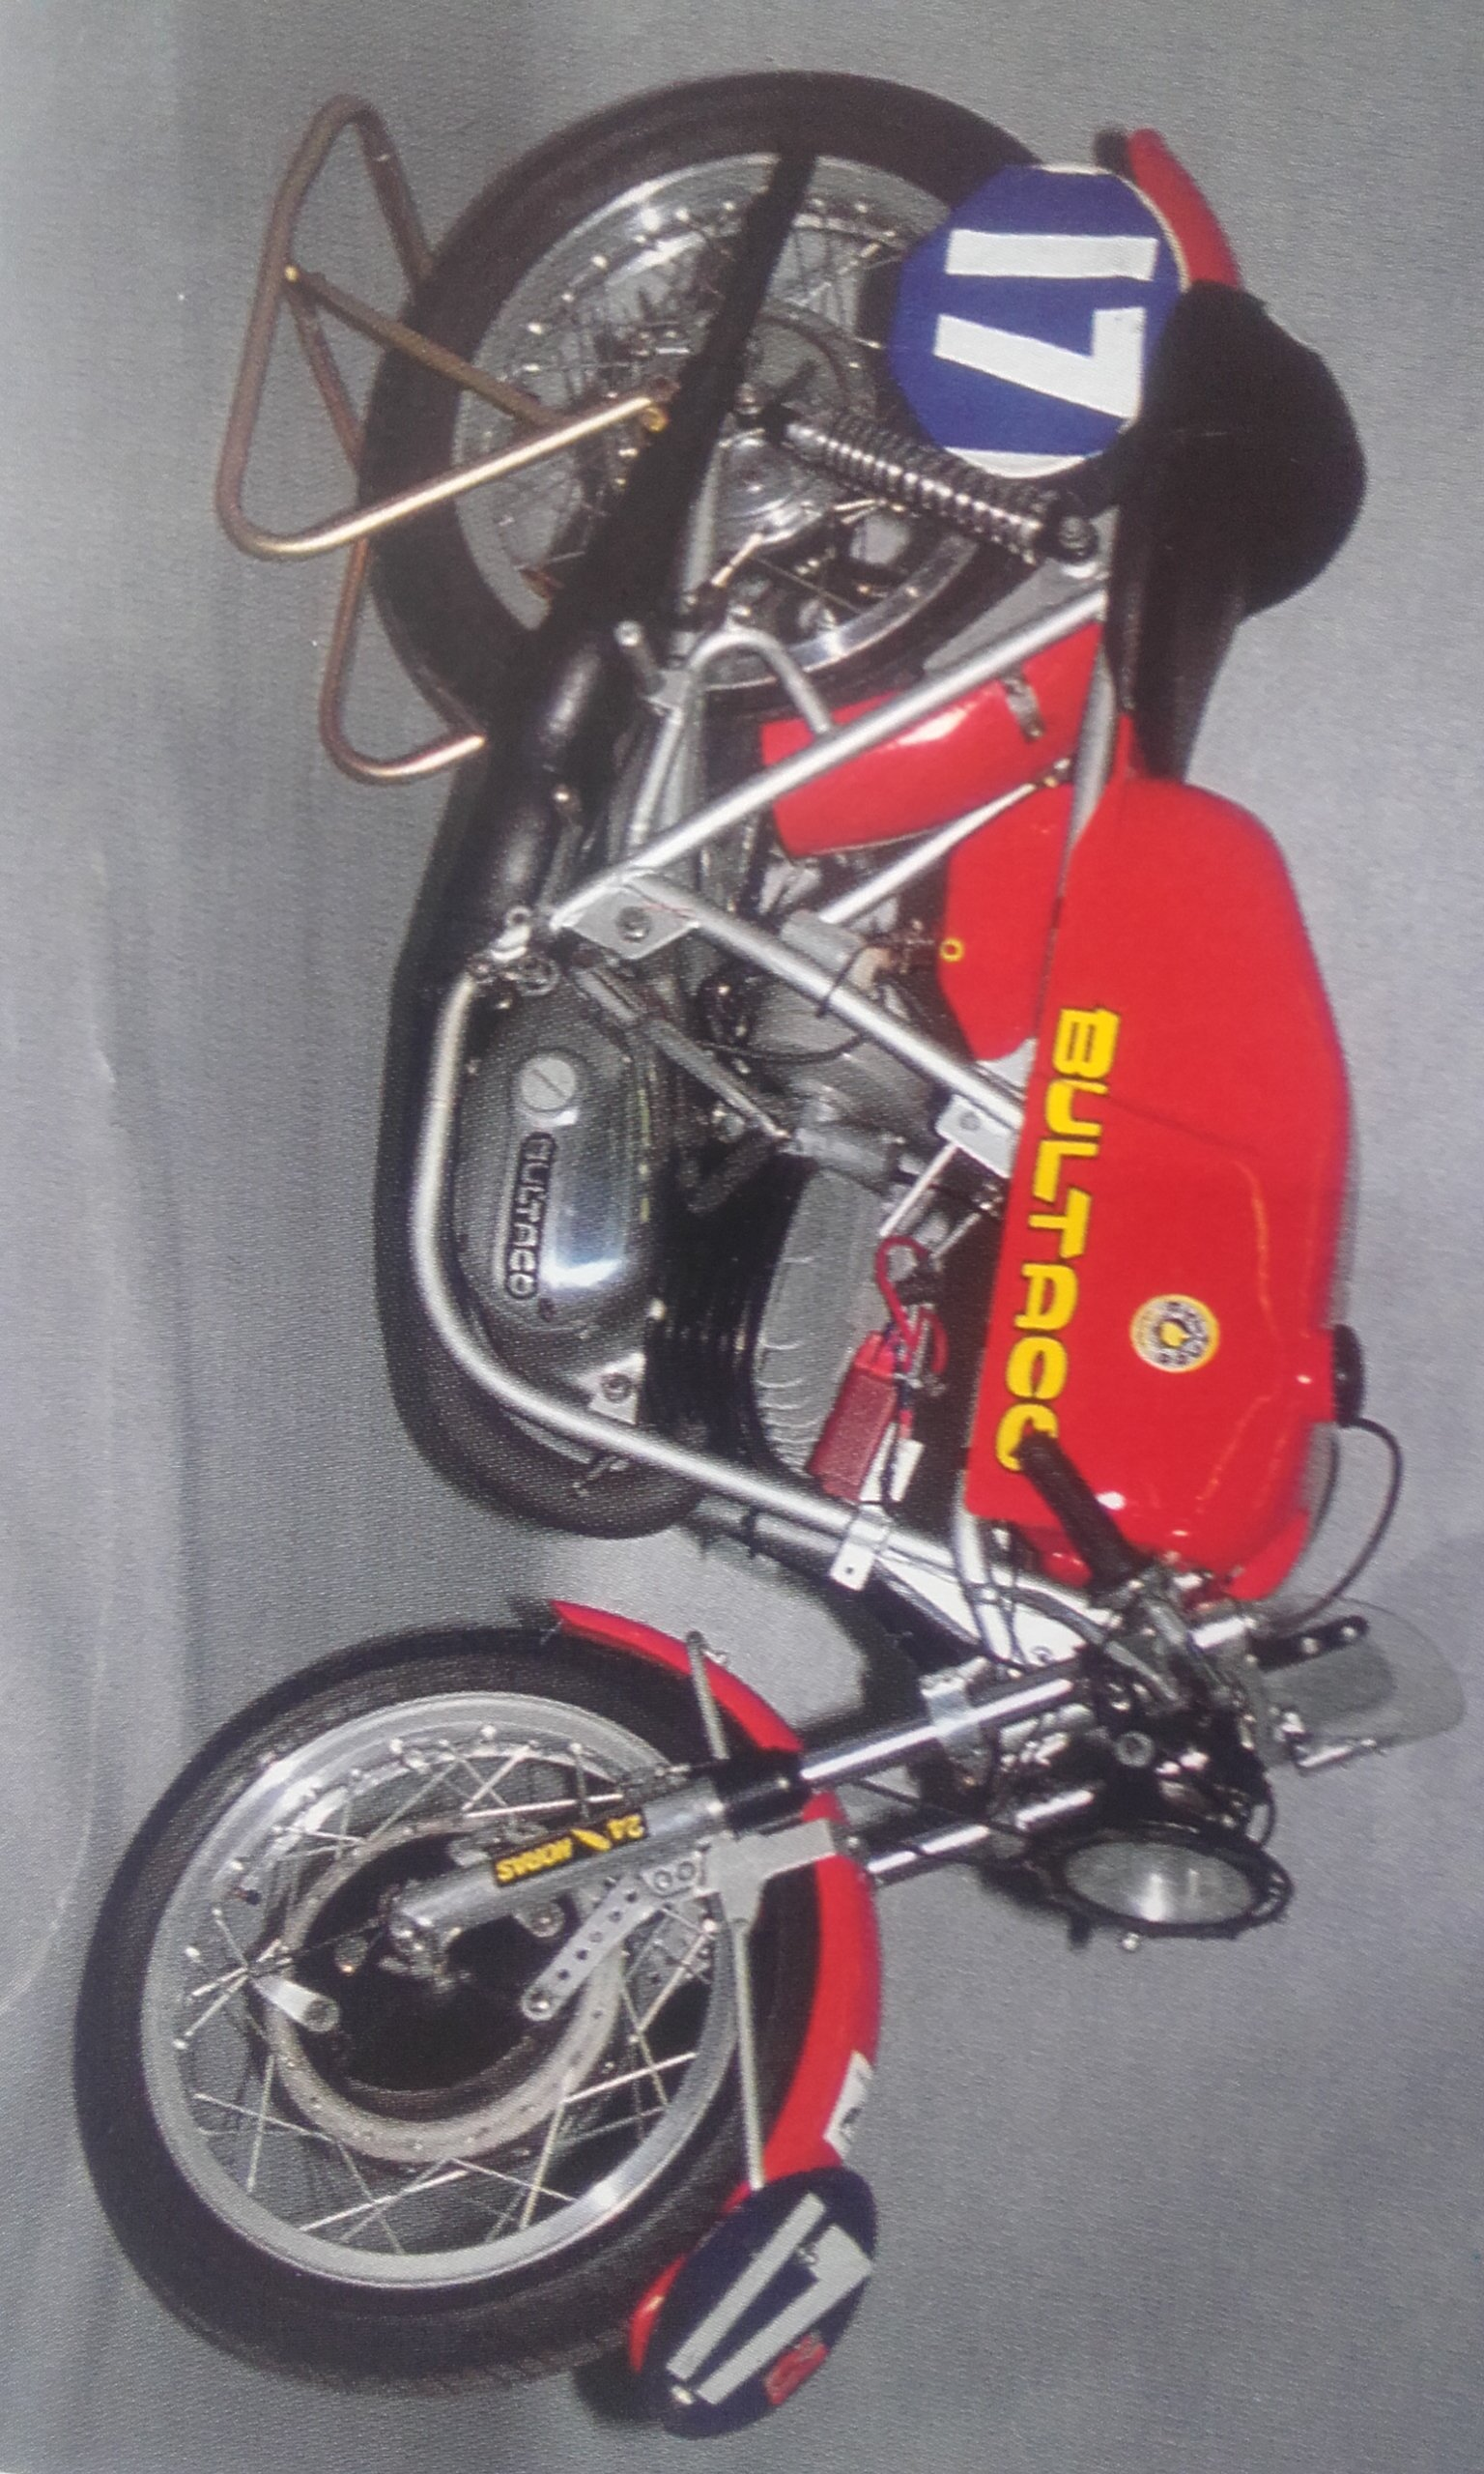 what bultaco engine used in this racer - Bultaco - Trials